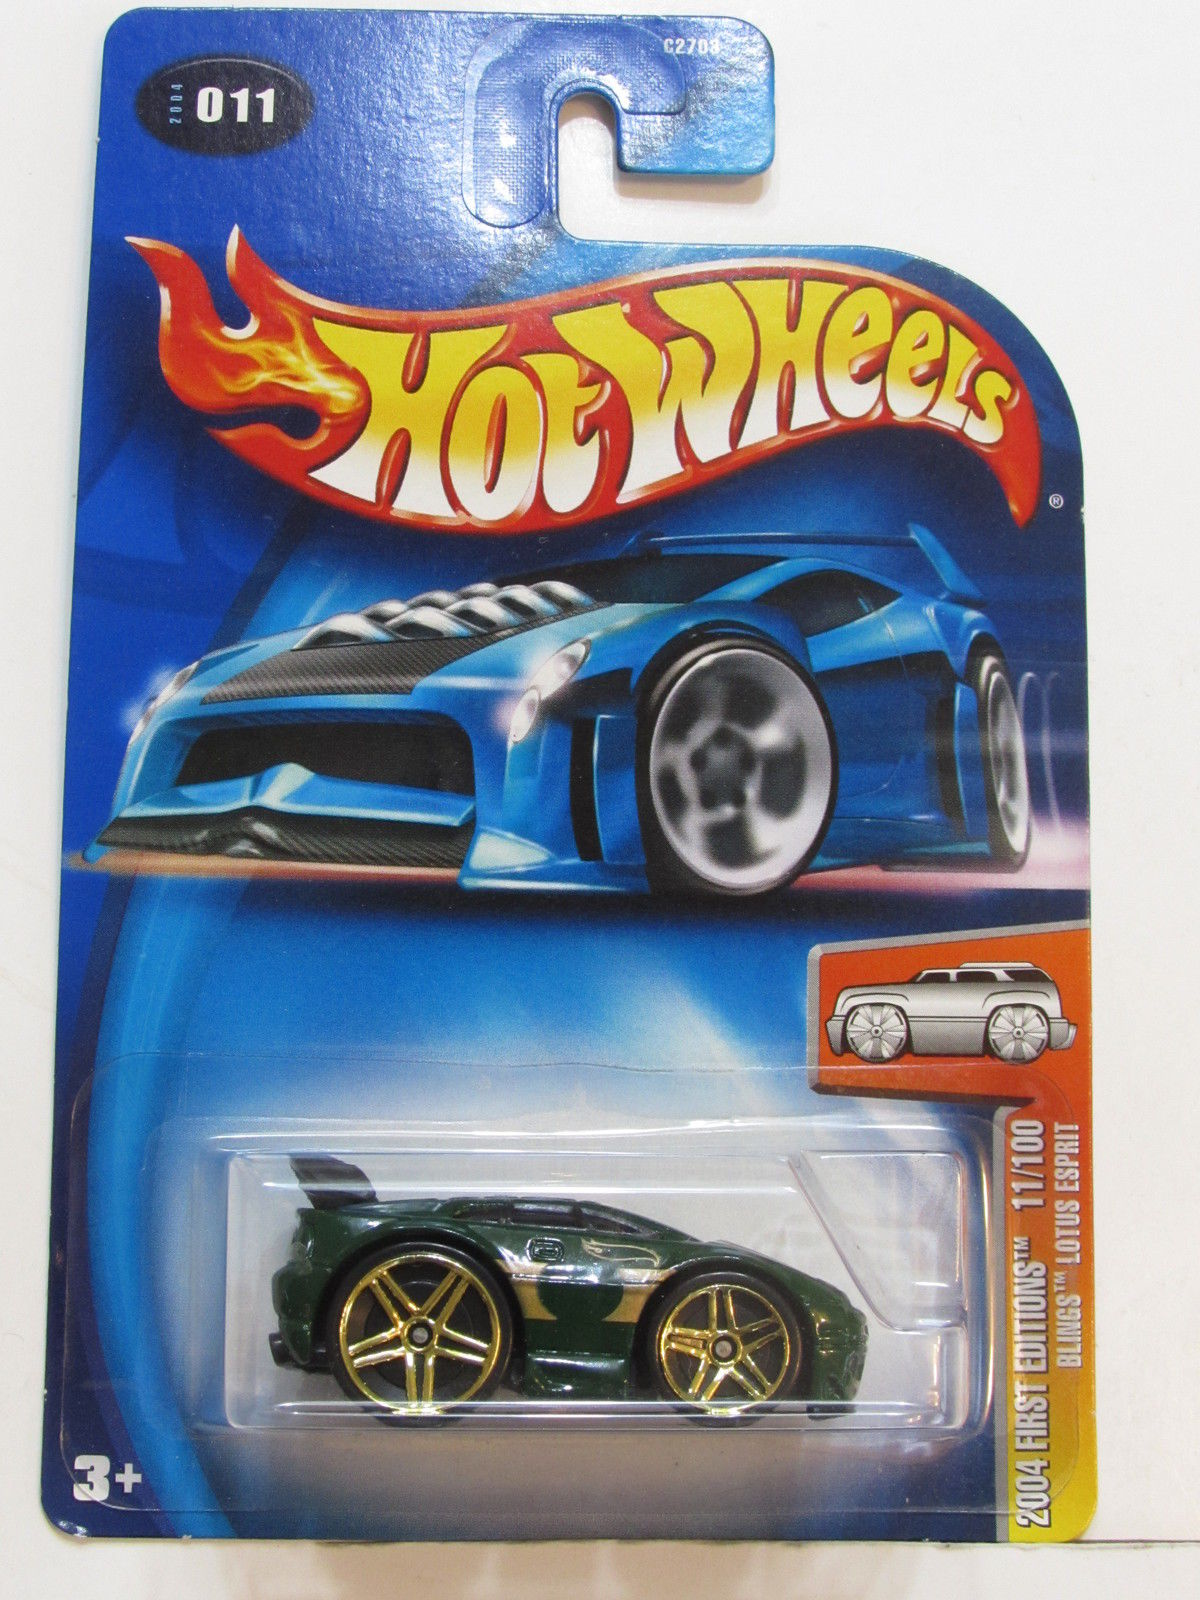 HOT WHEELS 2004 FIRST EDITIONS BLINGS LOTUS ESPRIT #011 - TAMPO ERROR